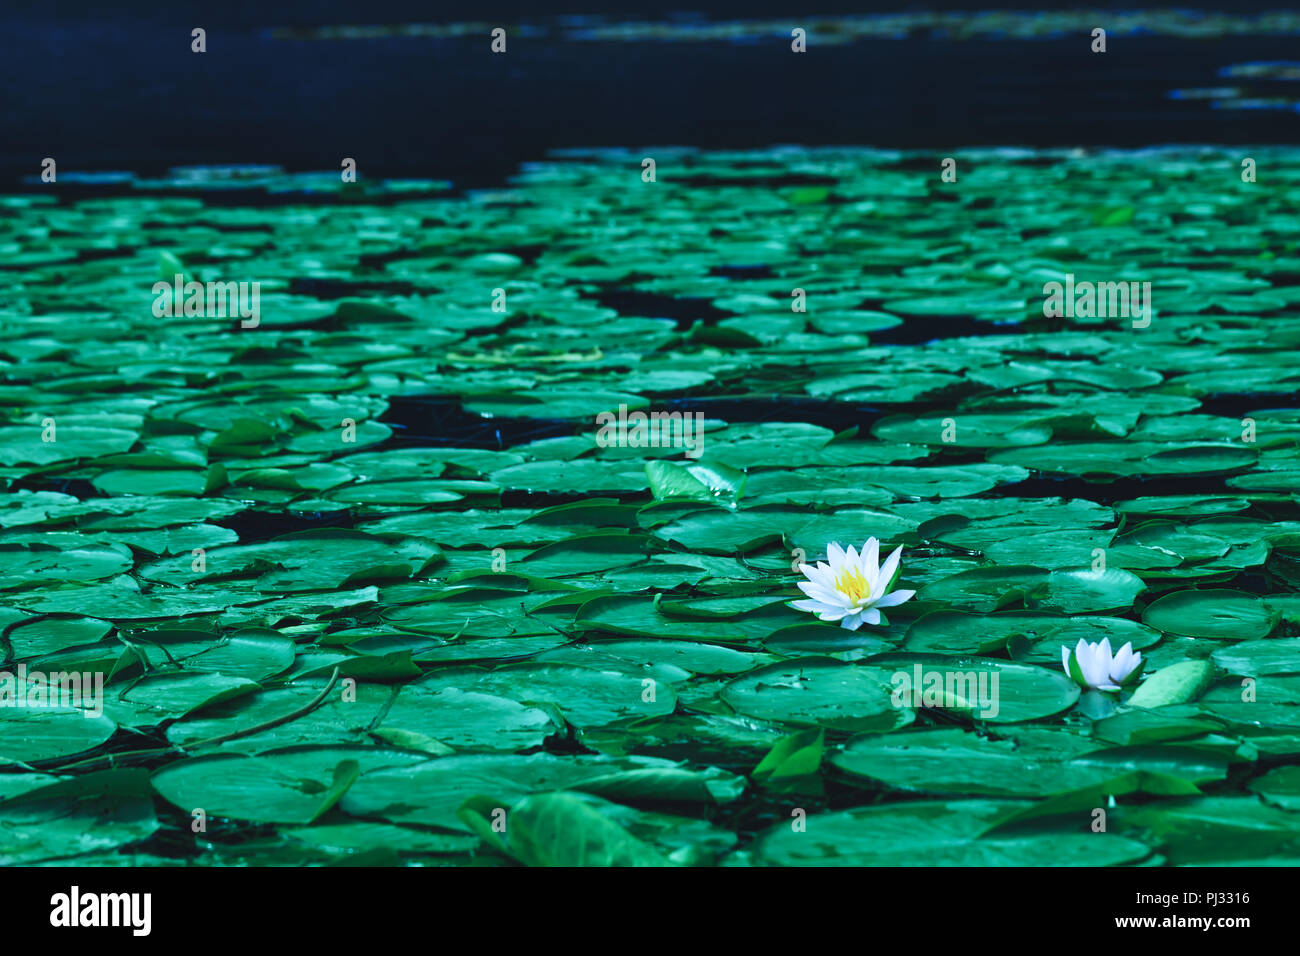 Pond With Water Lily Flowers Or White Lotus In Blooming Season